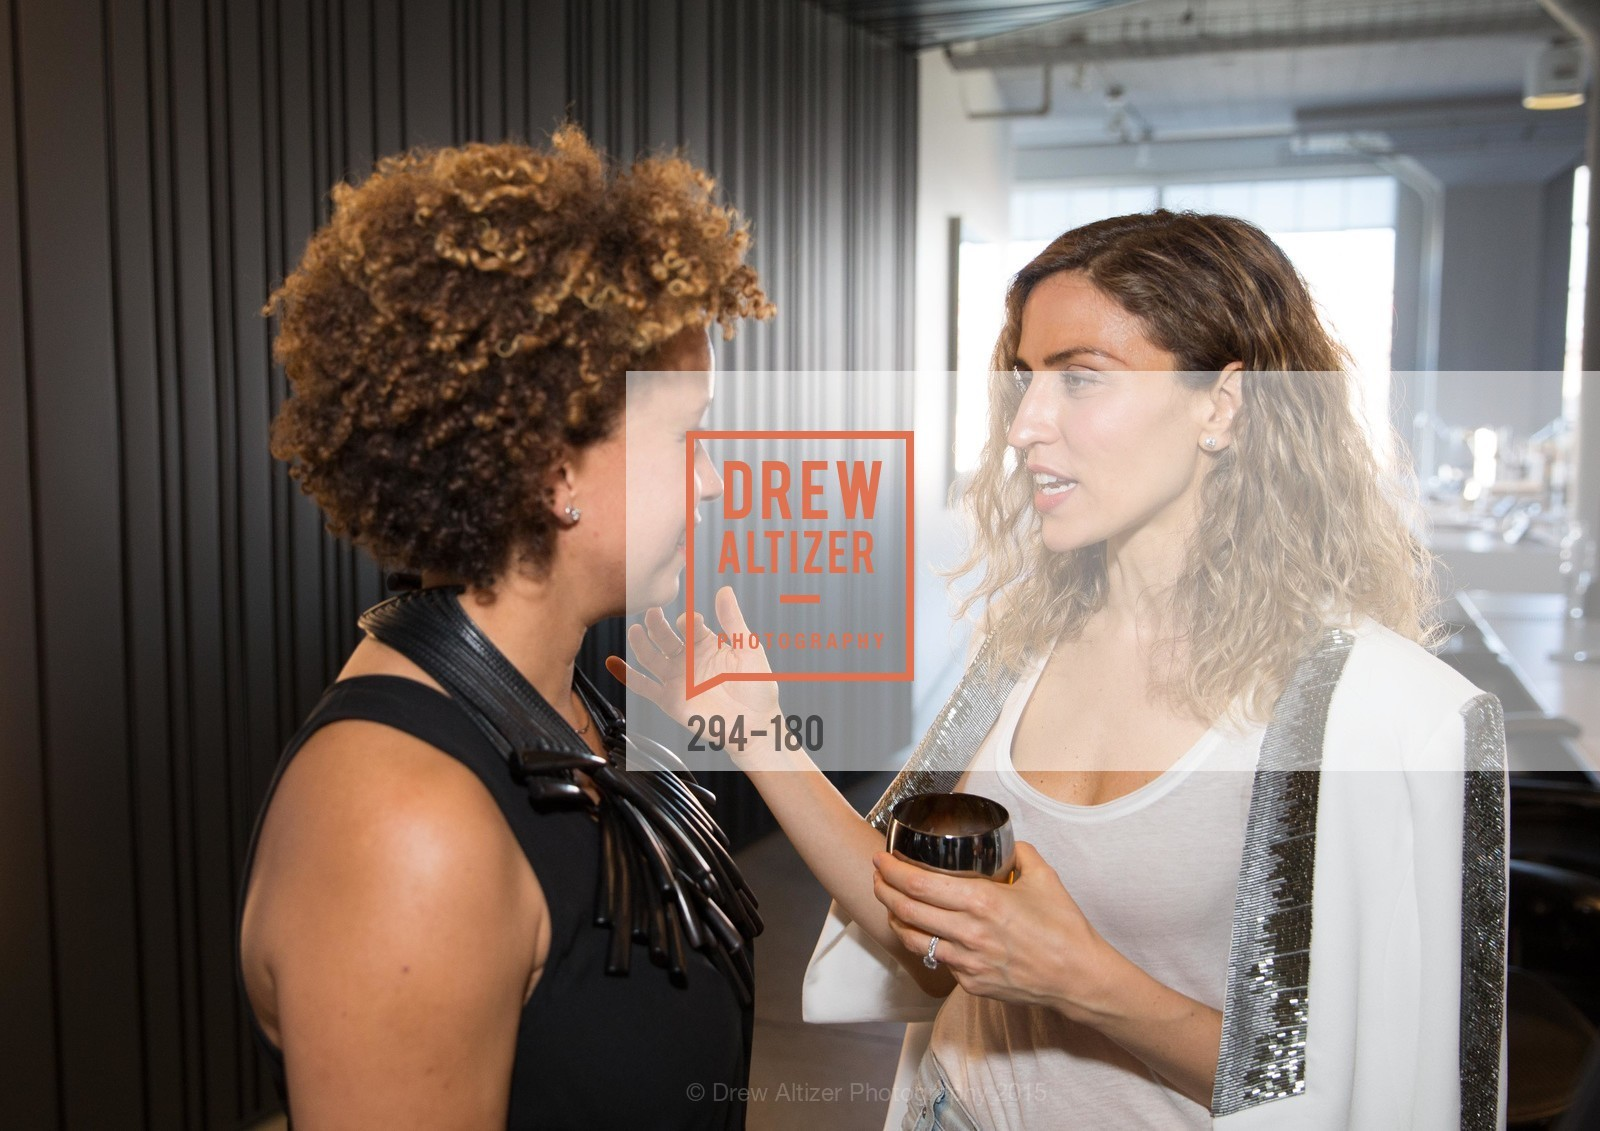 Lauren Godfrey, Amy Dadich, Wired Magazine July Cover Release Celebration at New Wired Office, Wired Magazine Offices. 520 3rd Street, June 24th, 2015,Drew Altizer, Drew Altizer Photography, full-service agency, private events, San Francisco photographer, photographer california